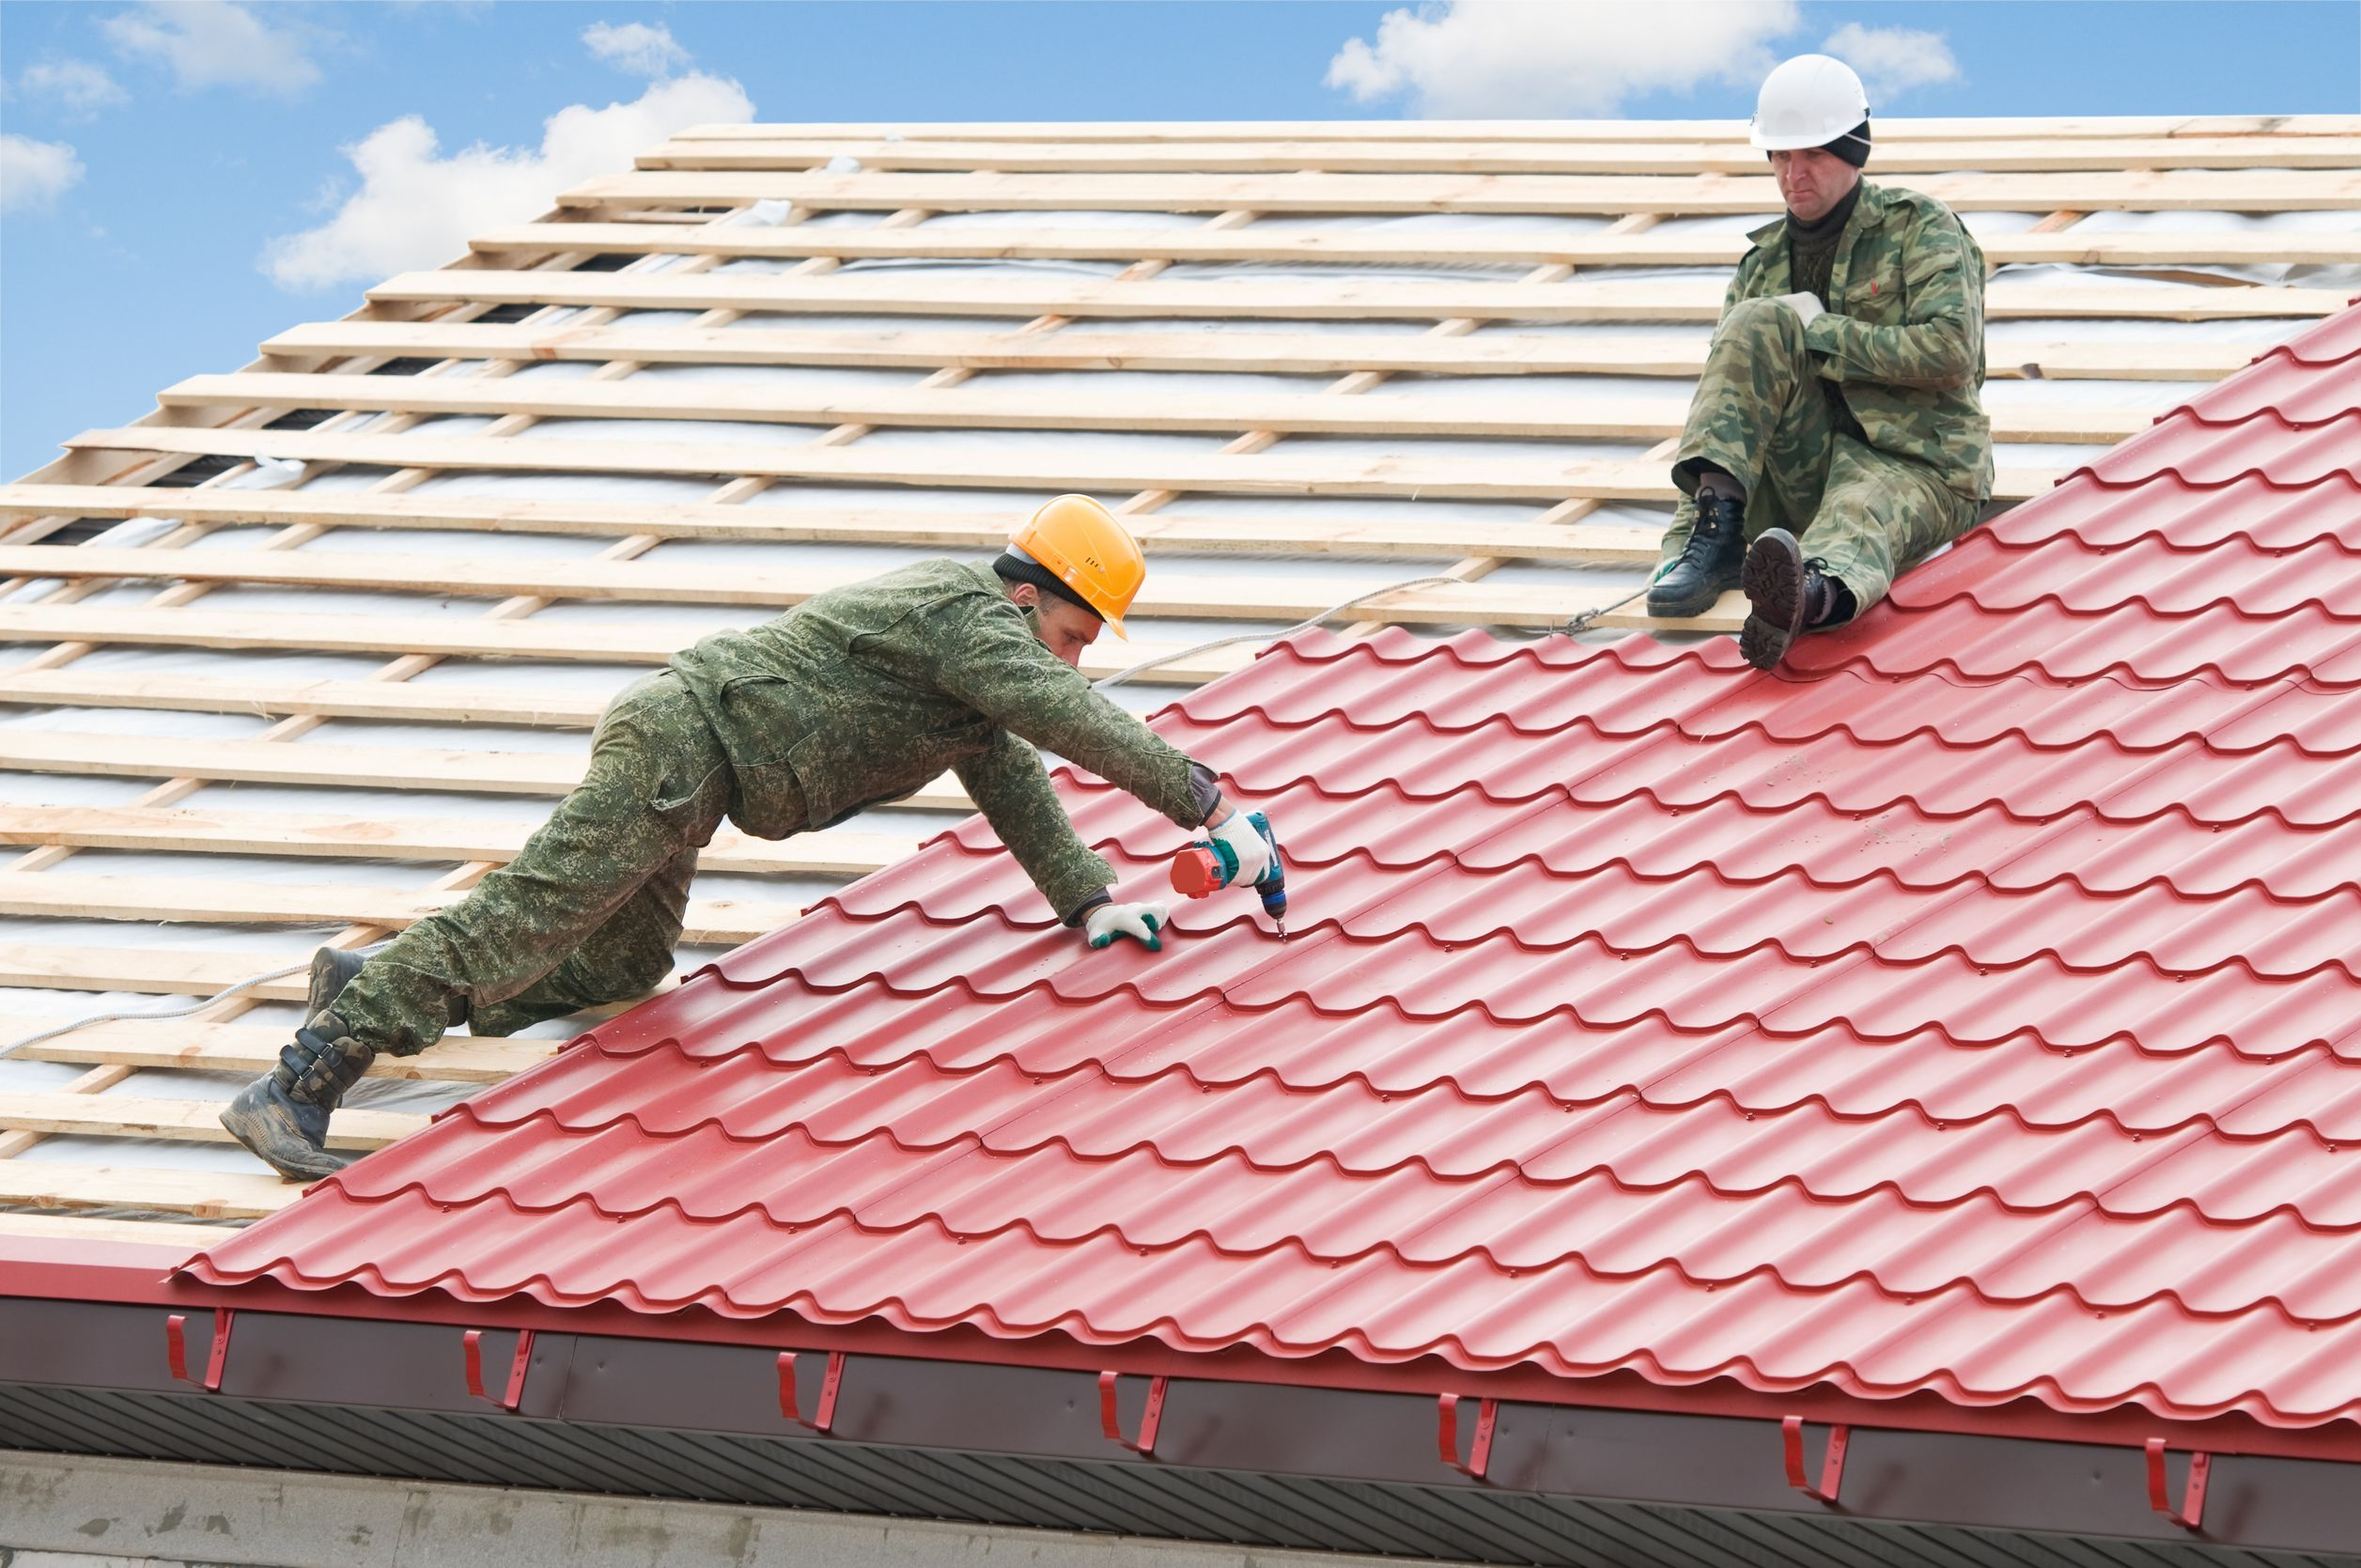 Roofing Upkeep Tips To Keep Your Roofing In Top Shape